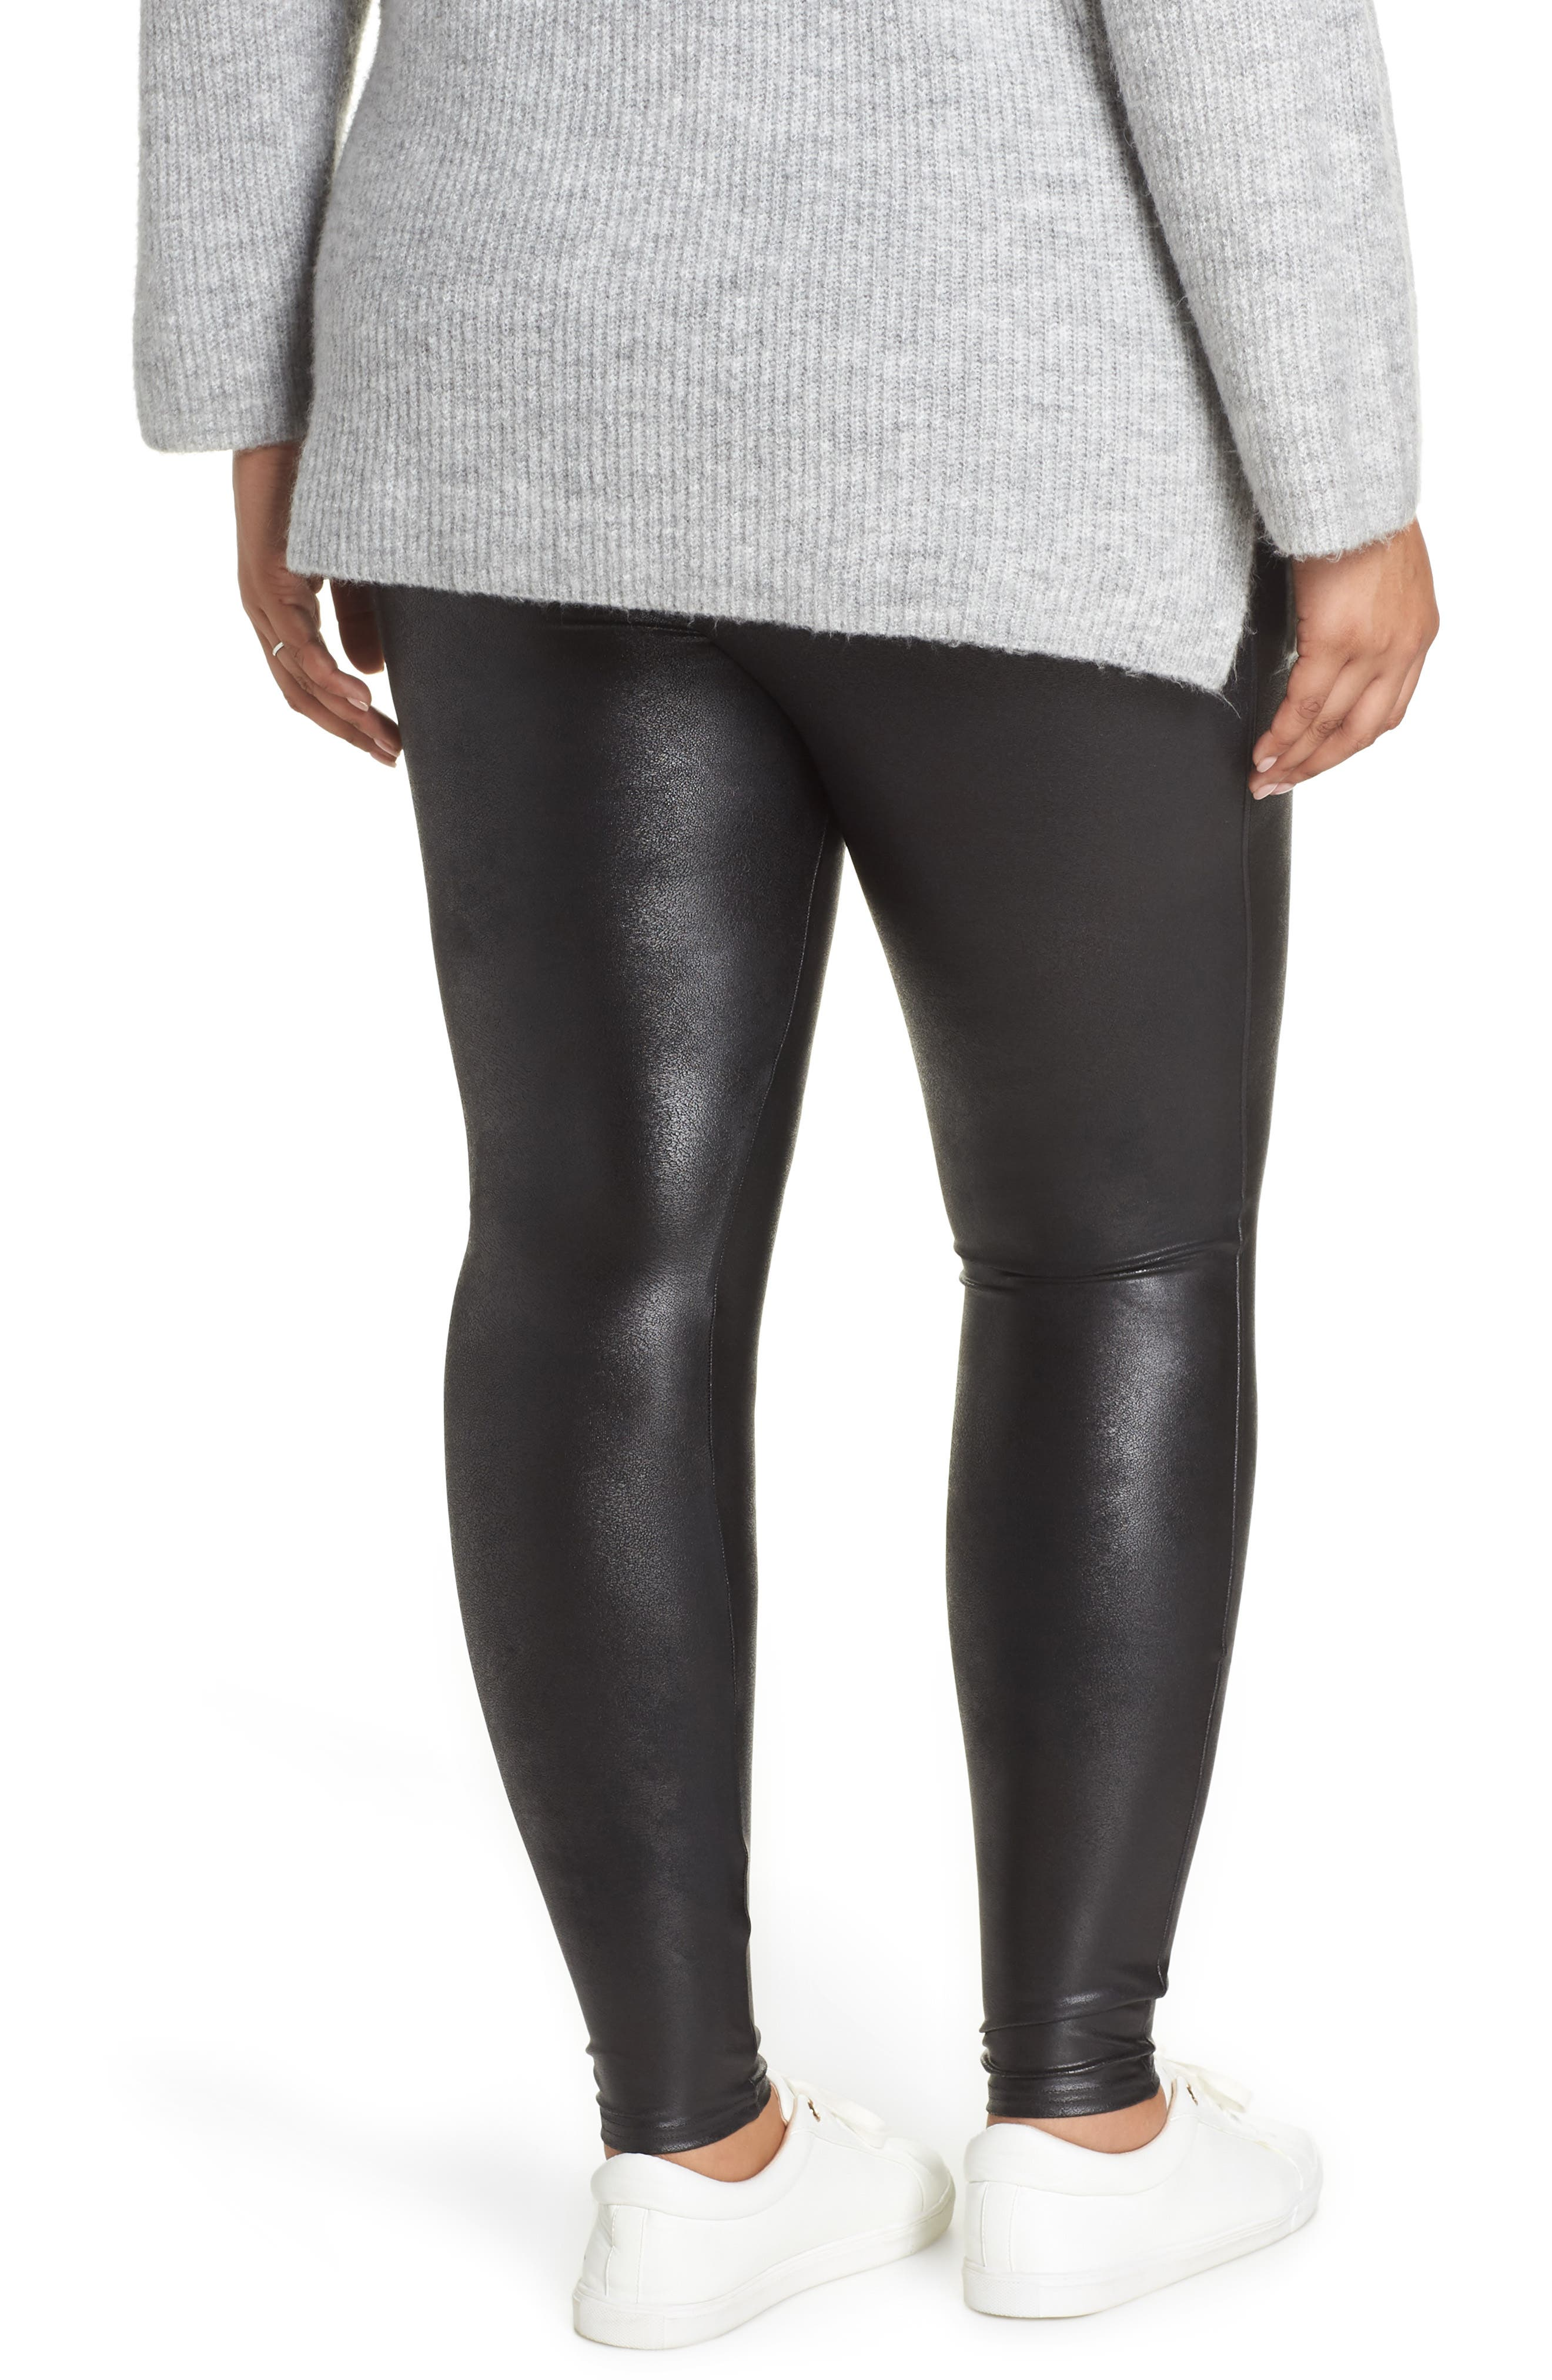 Mama High Rise Faux Leather Maternity Leggings,                             Alternate thumbnail 2, color,                             VERY BLACK